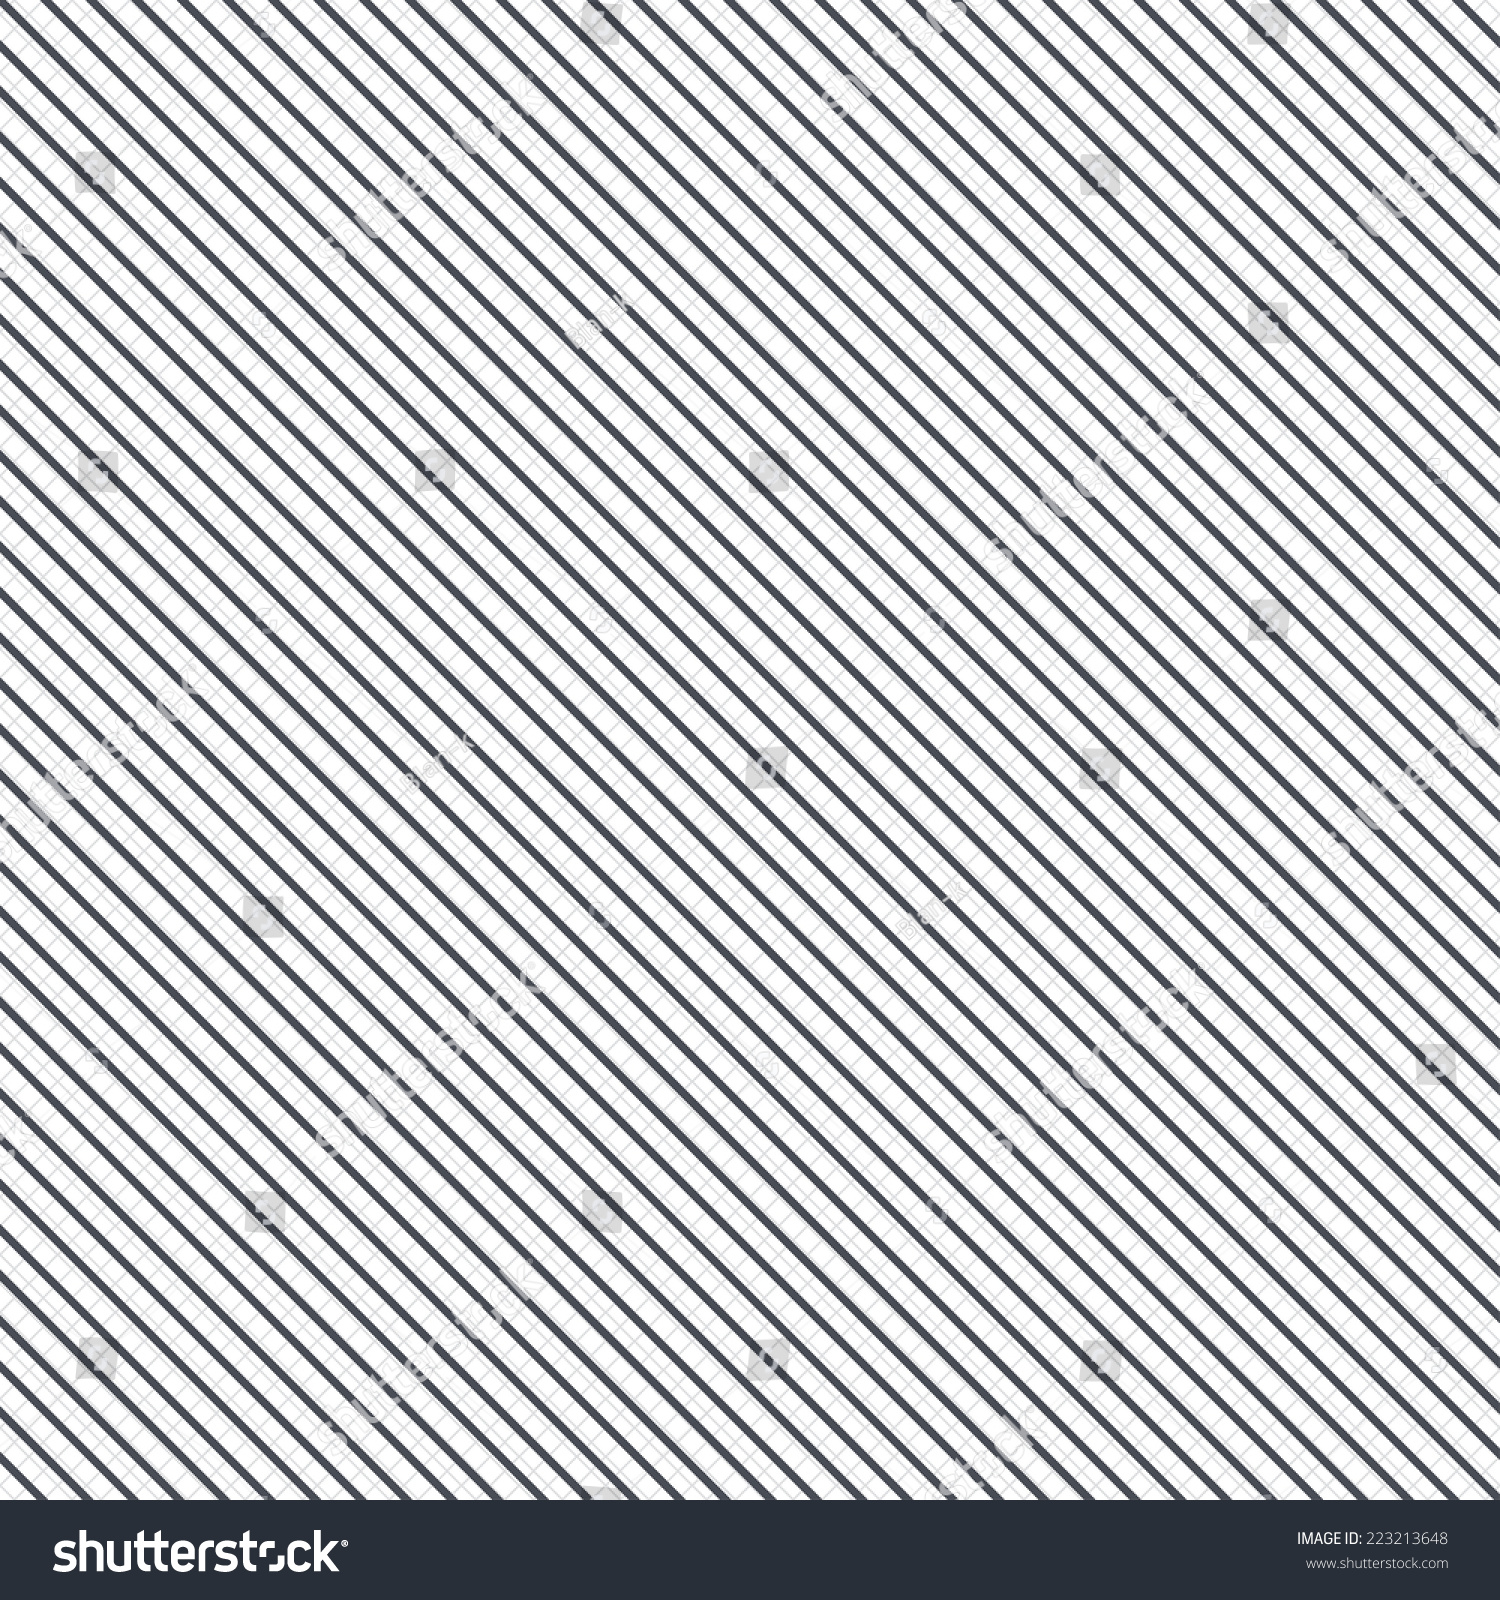 Line Texture Background : Diagonal lines hd wide wallpaper for widescreen